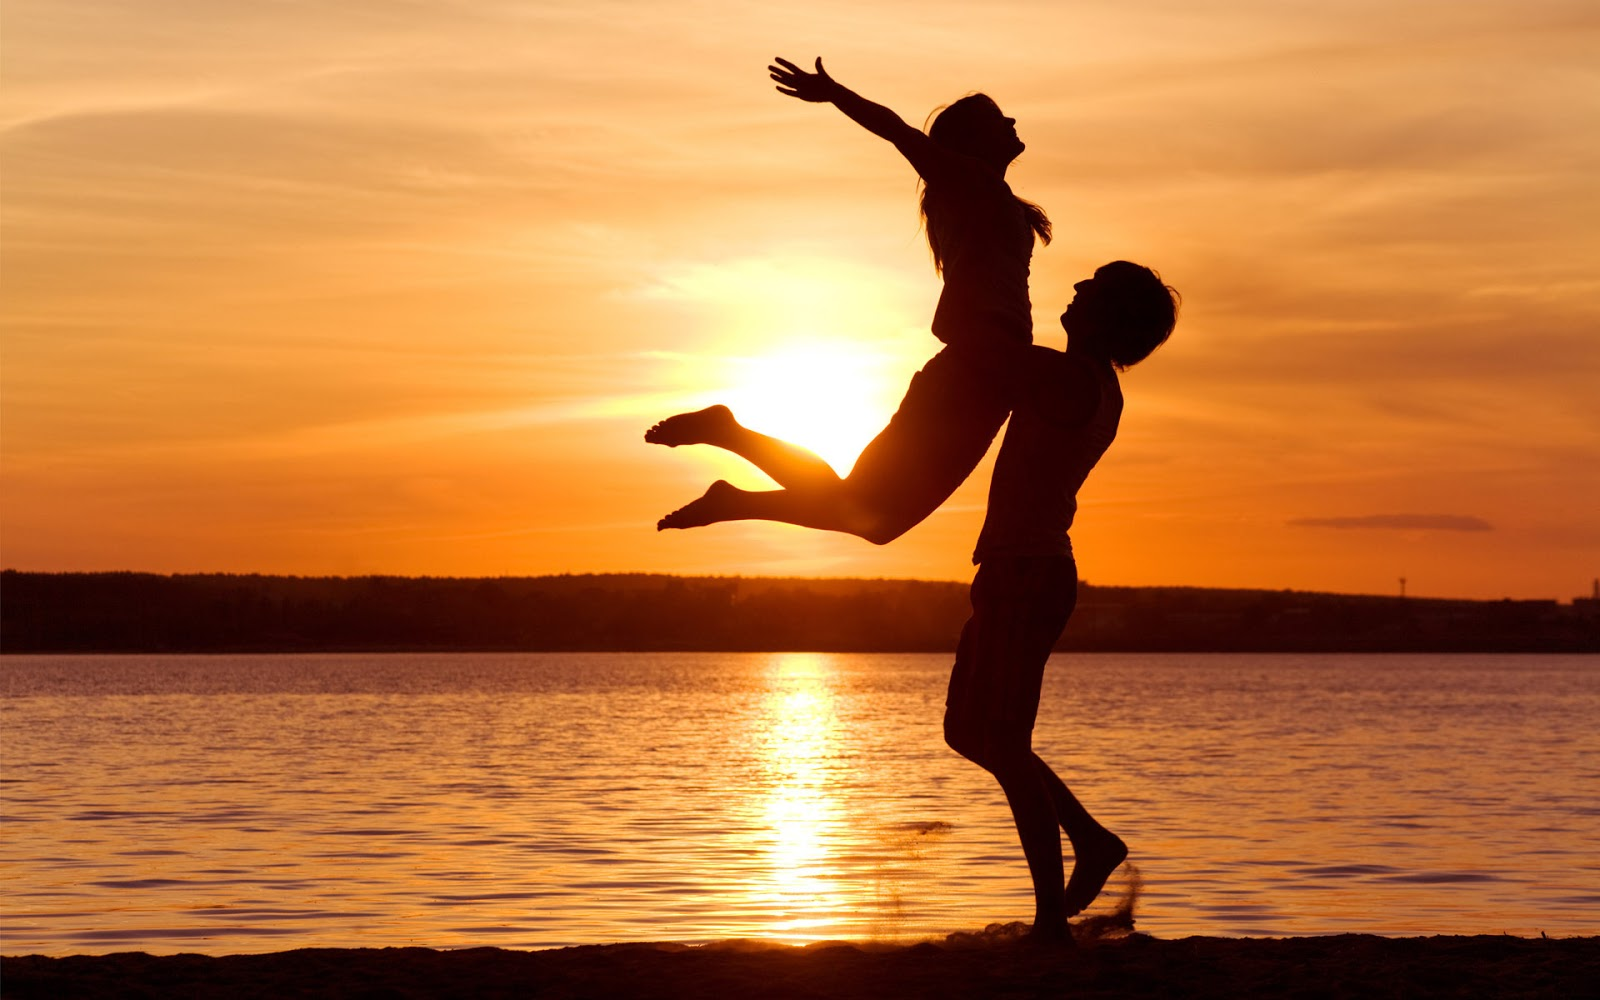 love-man-woman-silhouette-sun-sunset-sea-lake-beachother1.jpg